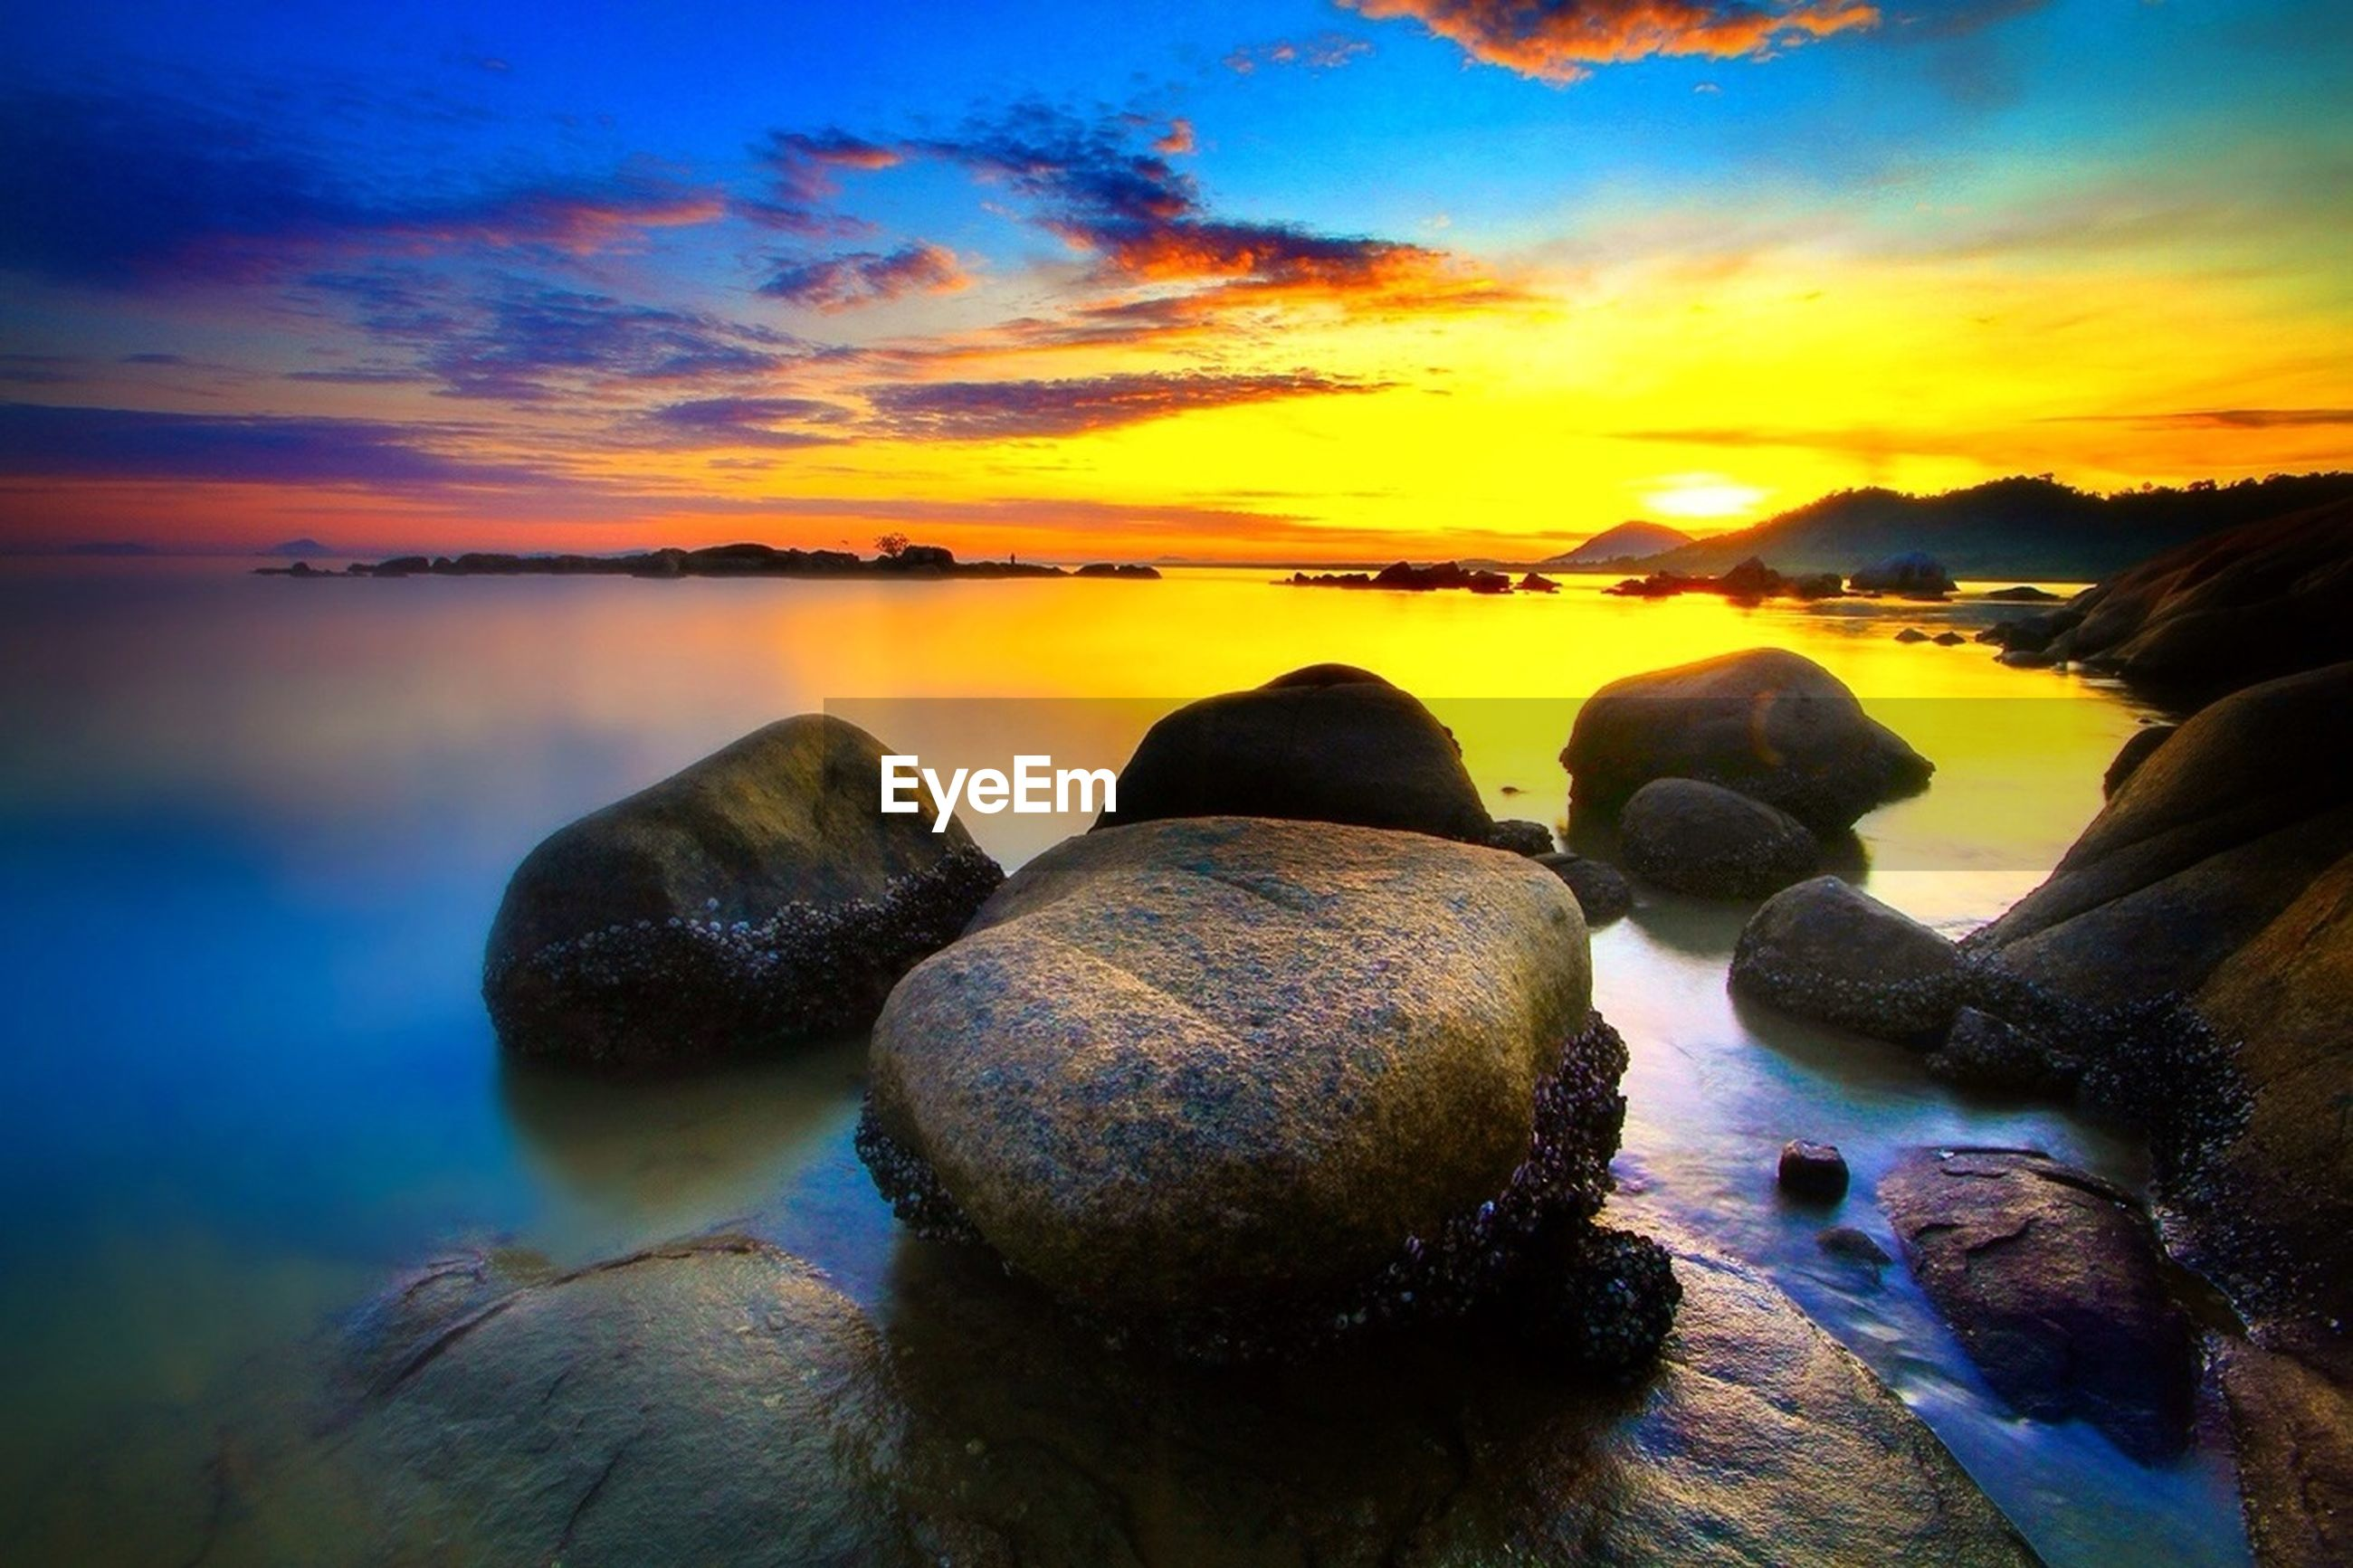 sunset, sea, water, sky, scenics, tranquil scene, beauty in nature, tranquility, beach, rock - object, cloud - sky, nature, horizon over water, idyllic, shore, reflection, orange color, cloud, dusk, rock